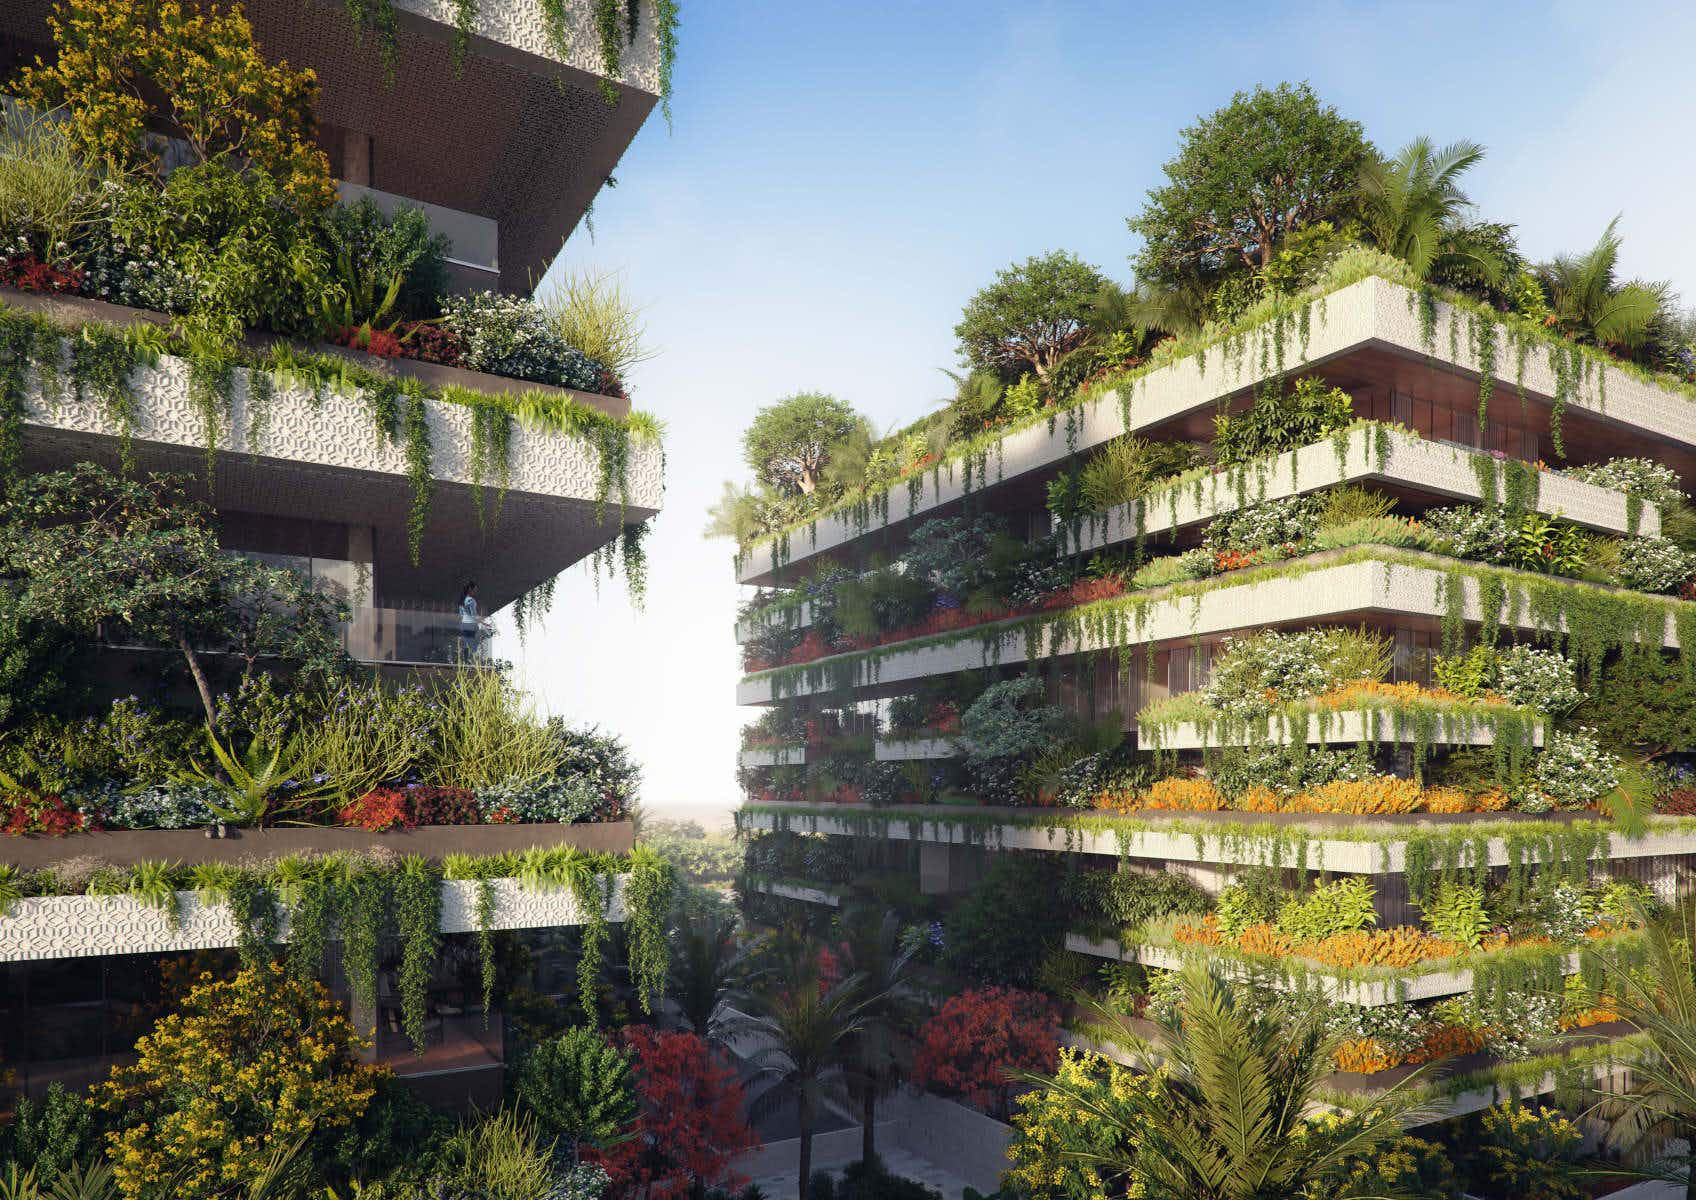 Egypt will soon be getting its first vertical forest, the very first one in Africa